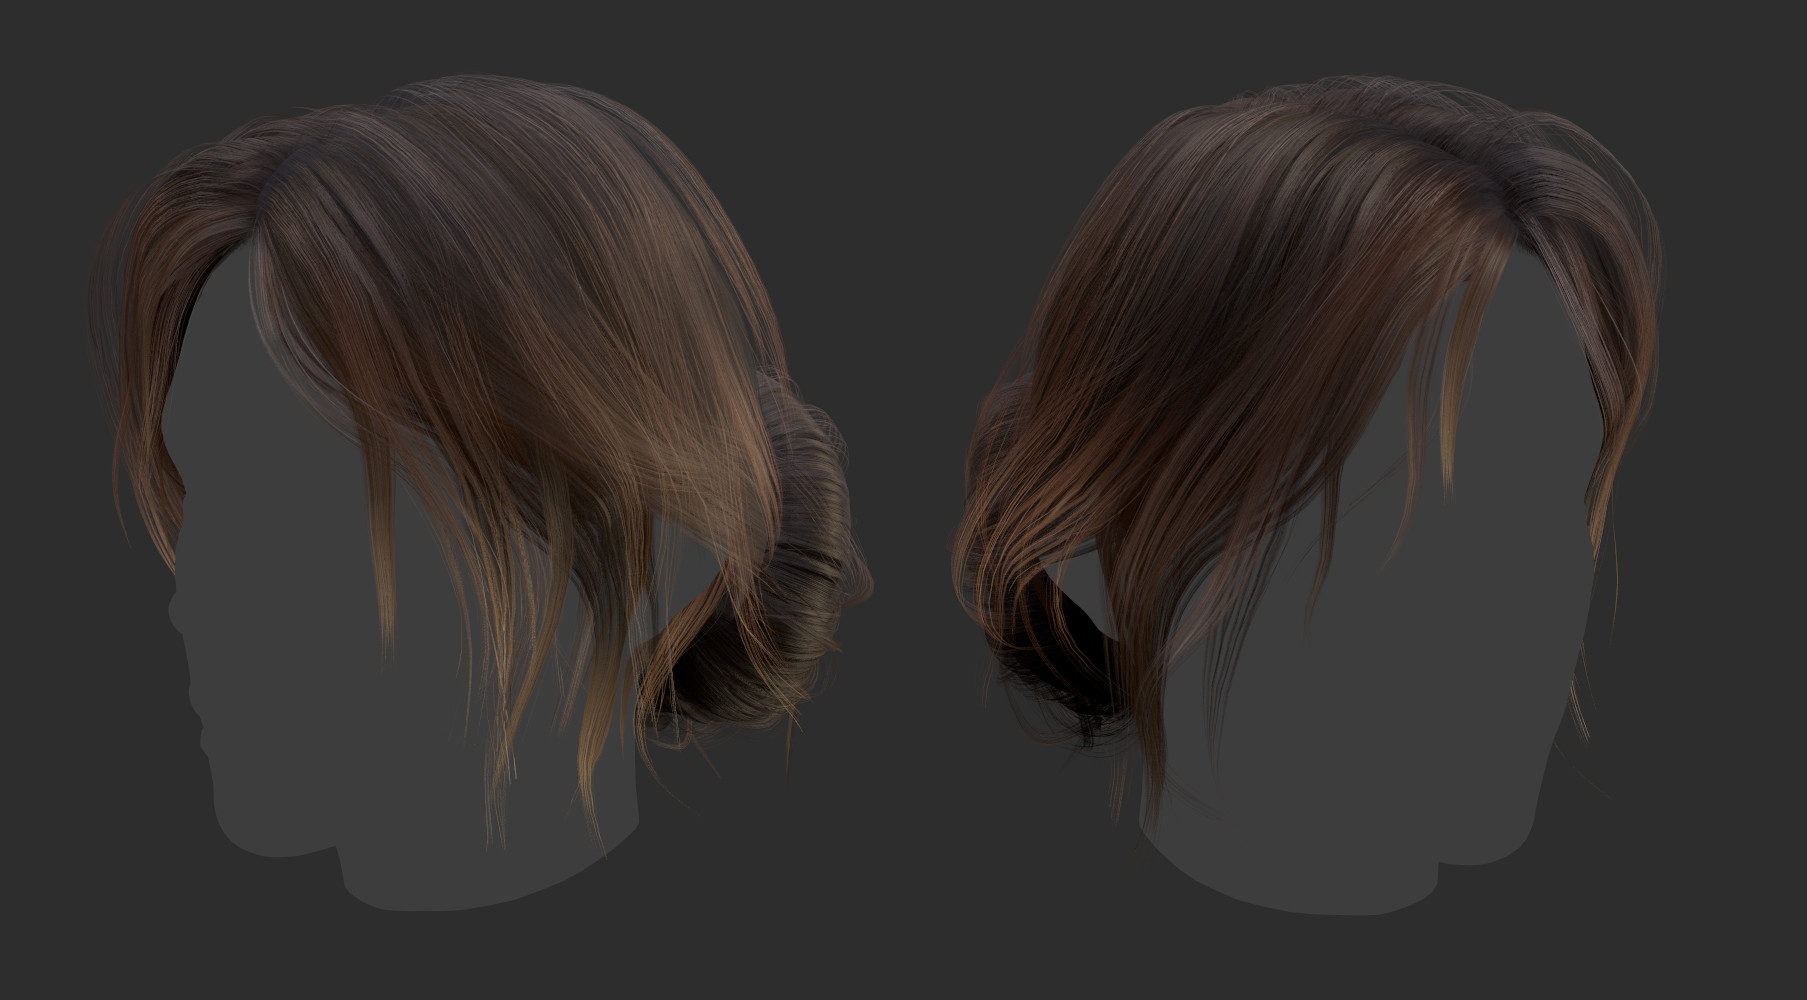 Paul foster hair render01